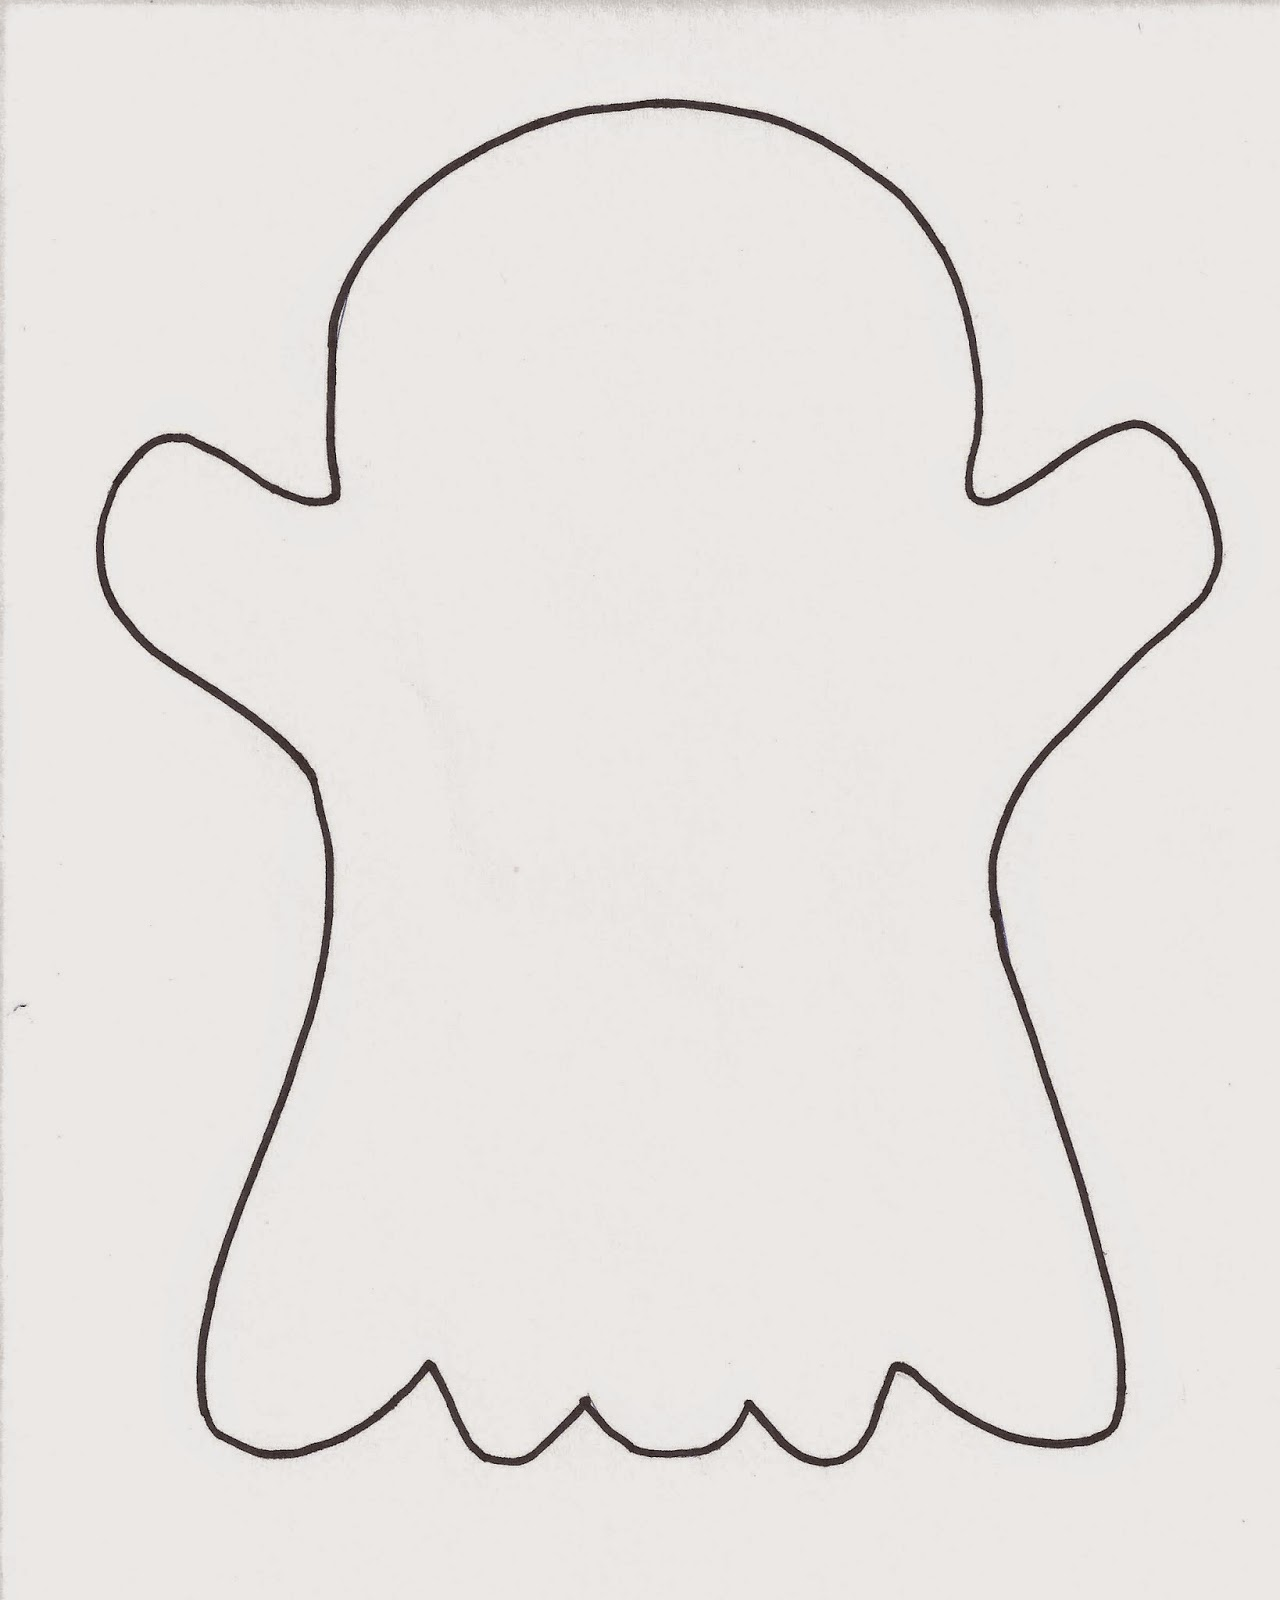 Click here for a free printable ghost template .